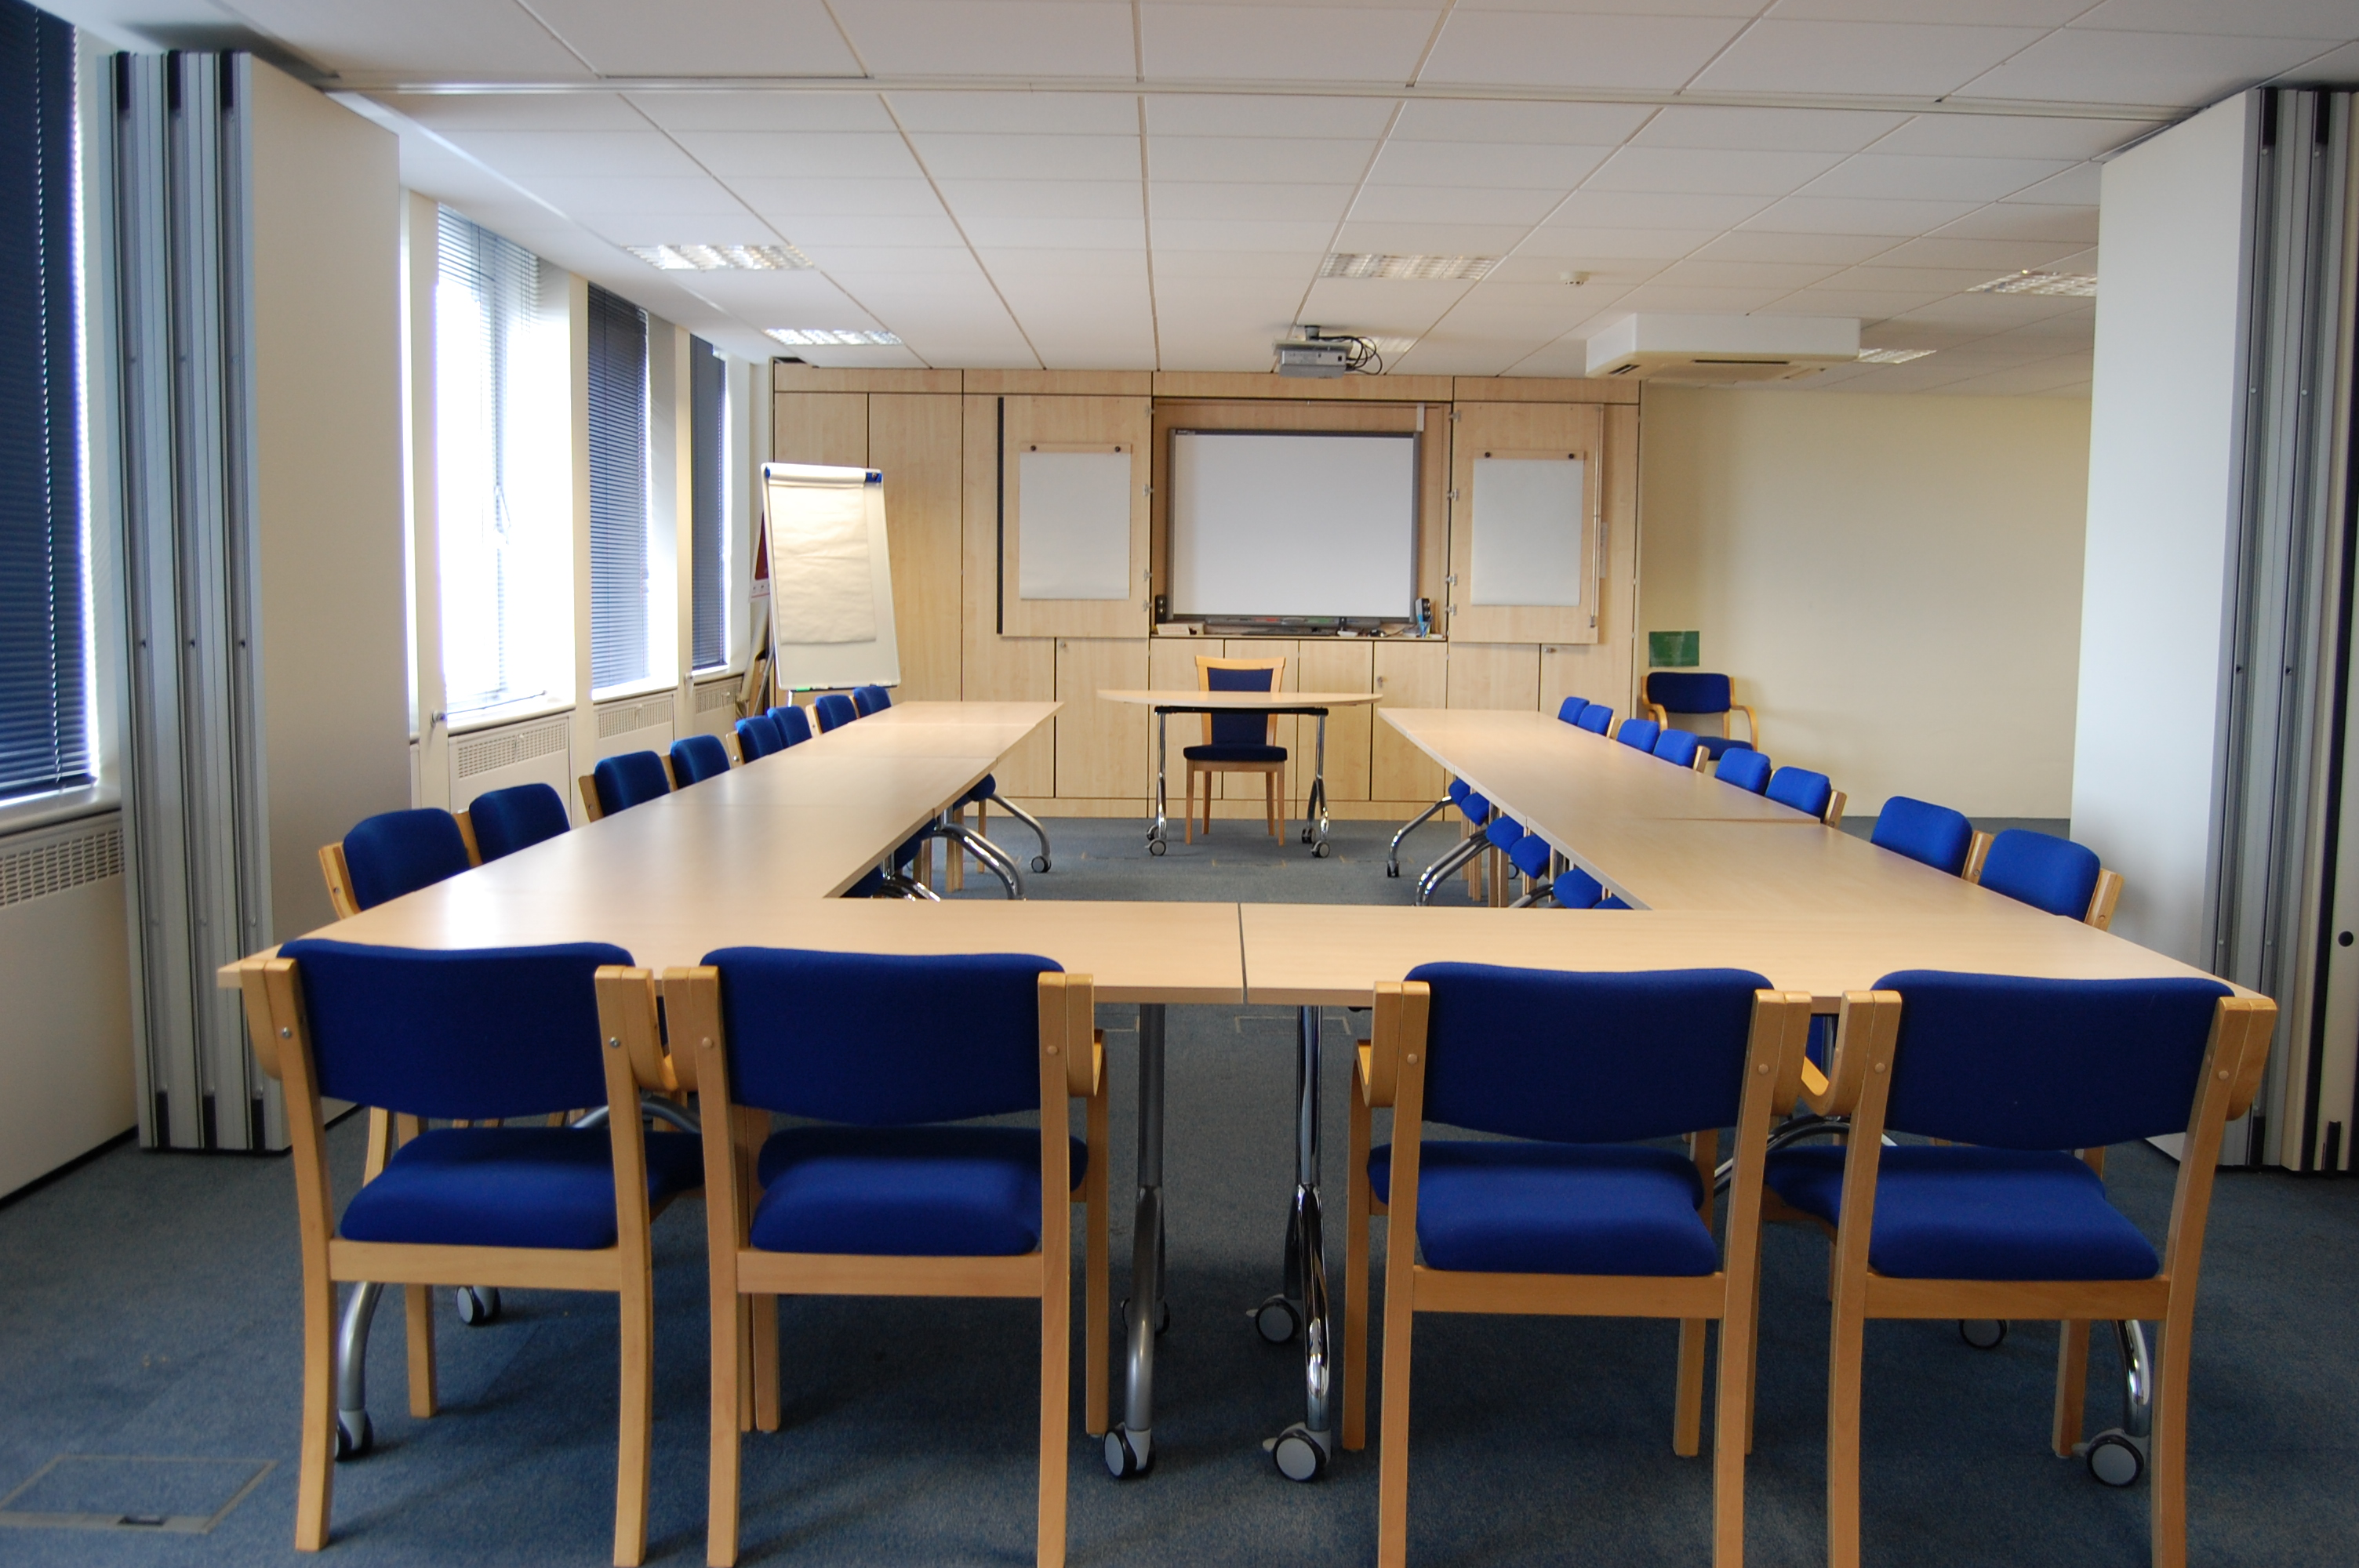 Maitland House Training Suite U-shaped layout